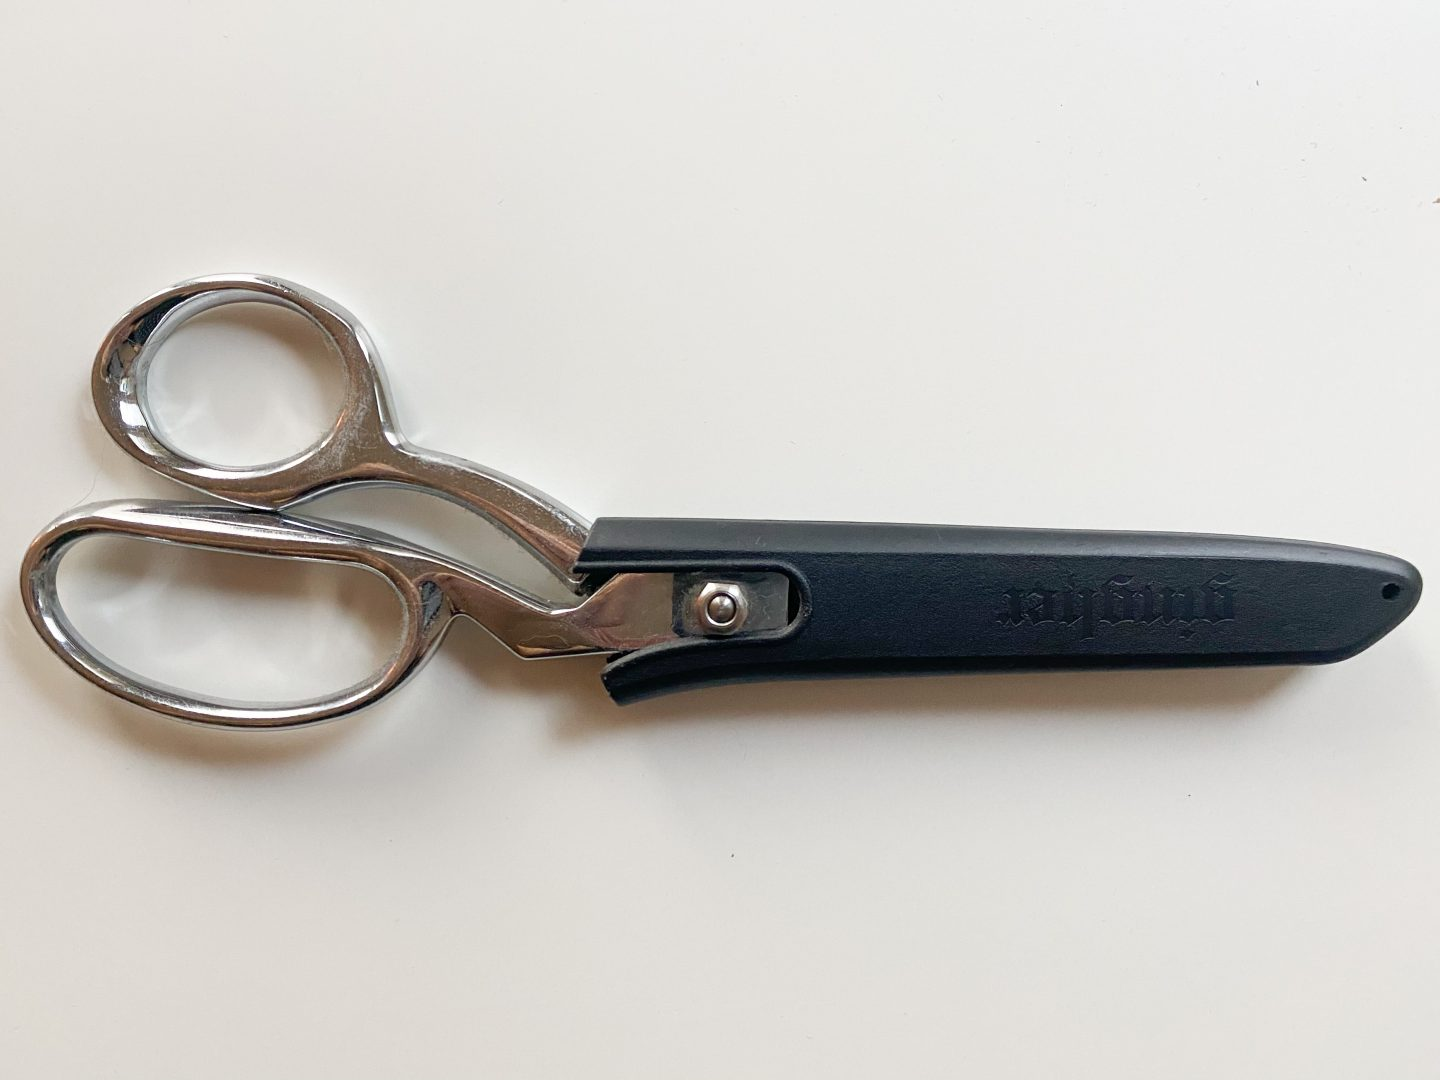 Image of a pair of metal sewing shears in its protective black case against a white background.